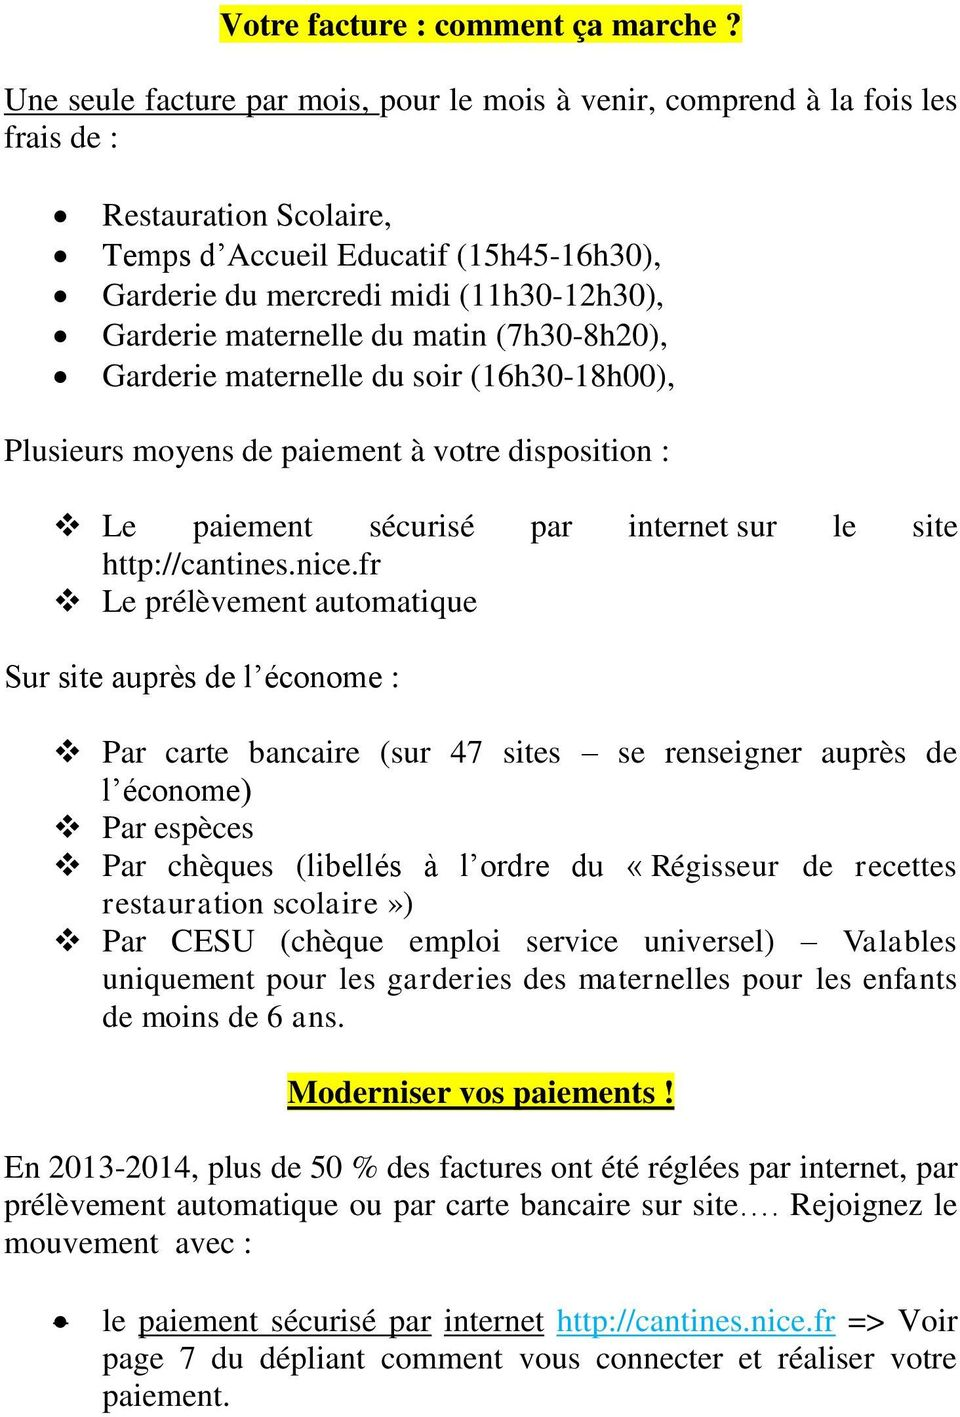 Restauration Scolaire Nice Ordre